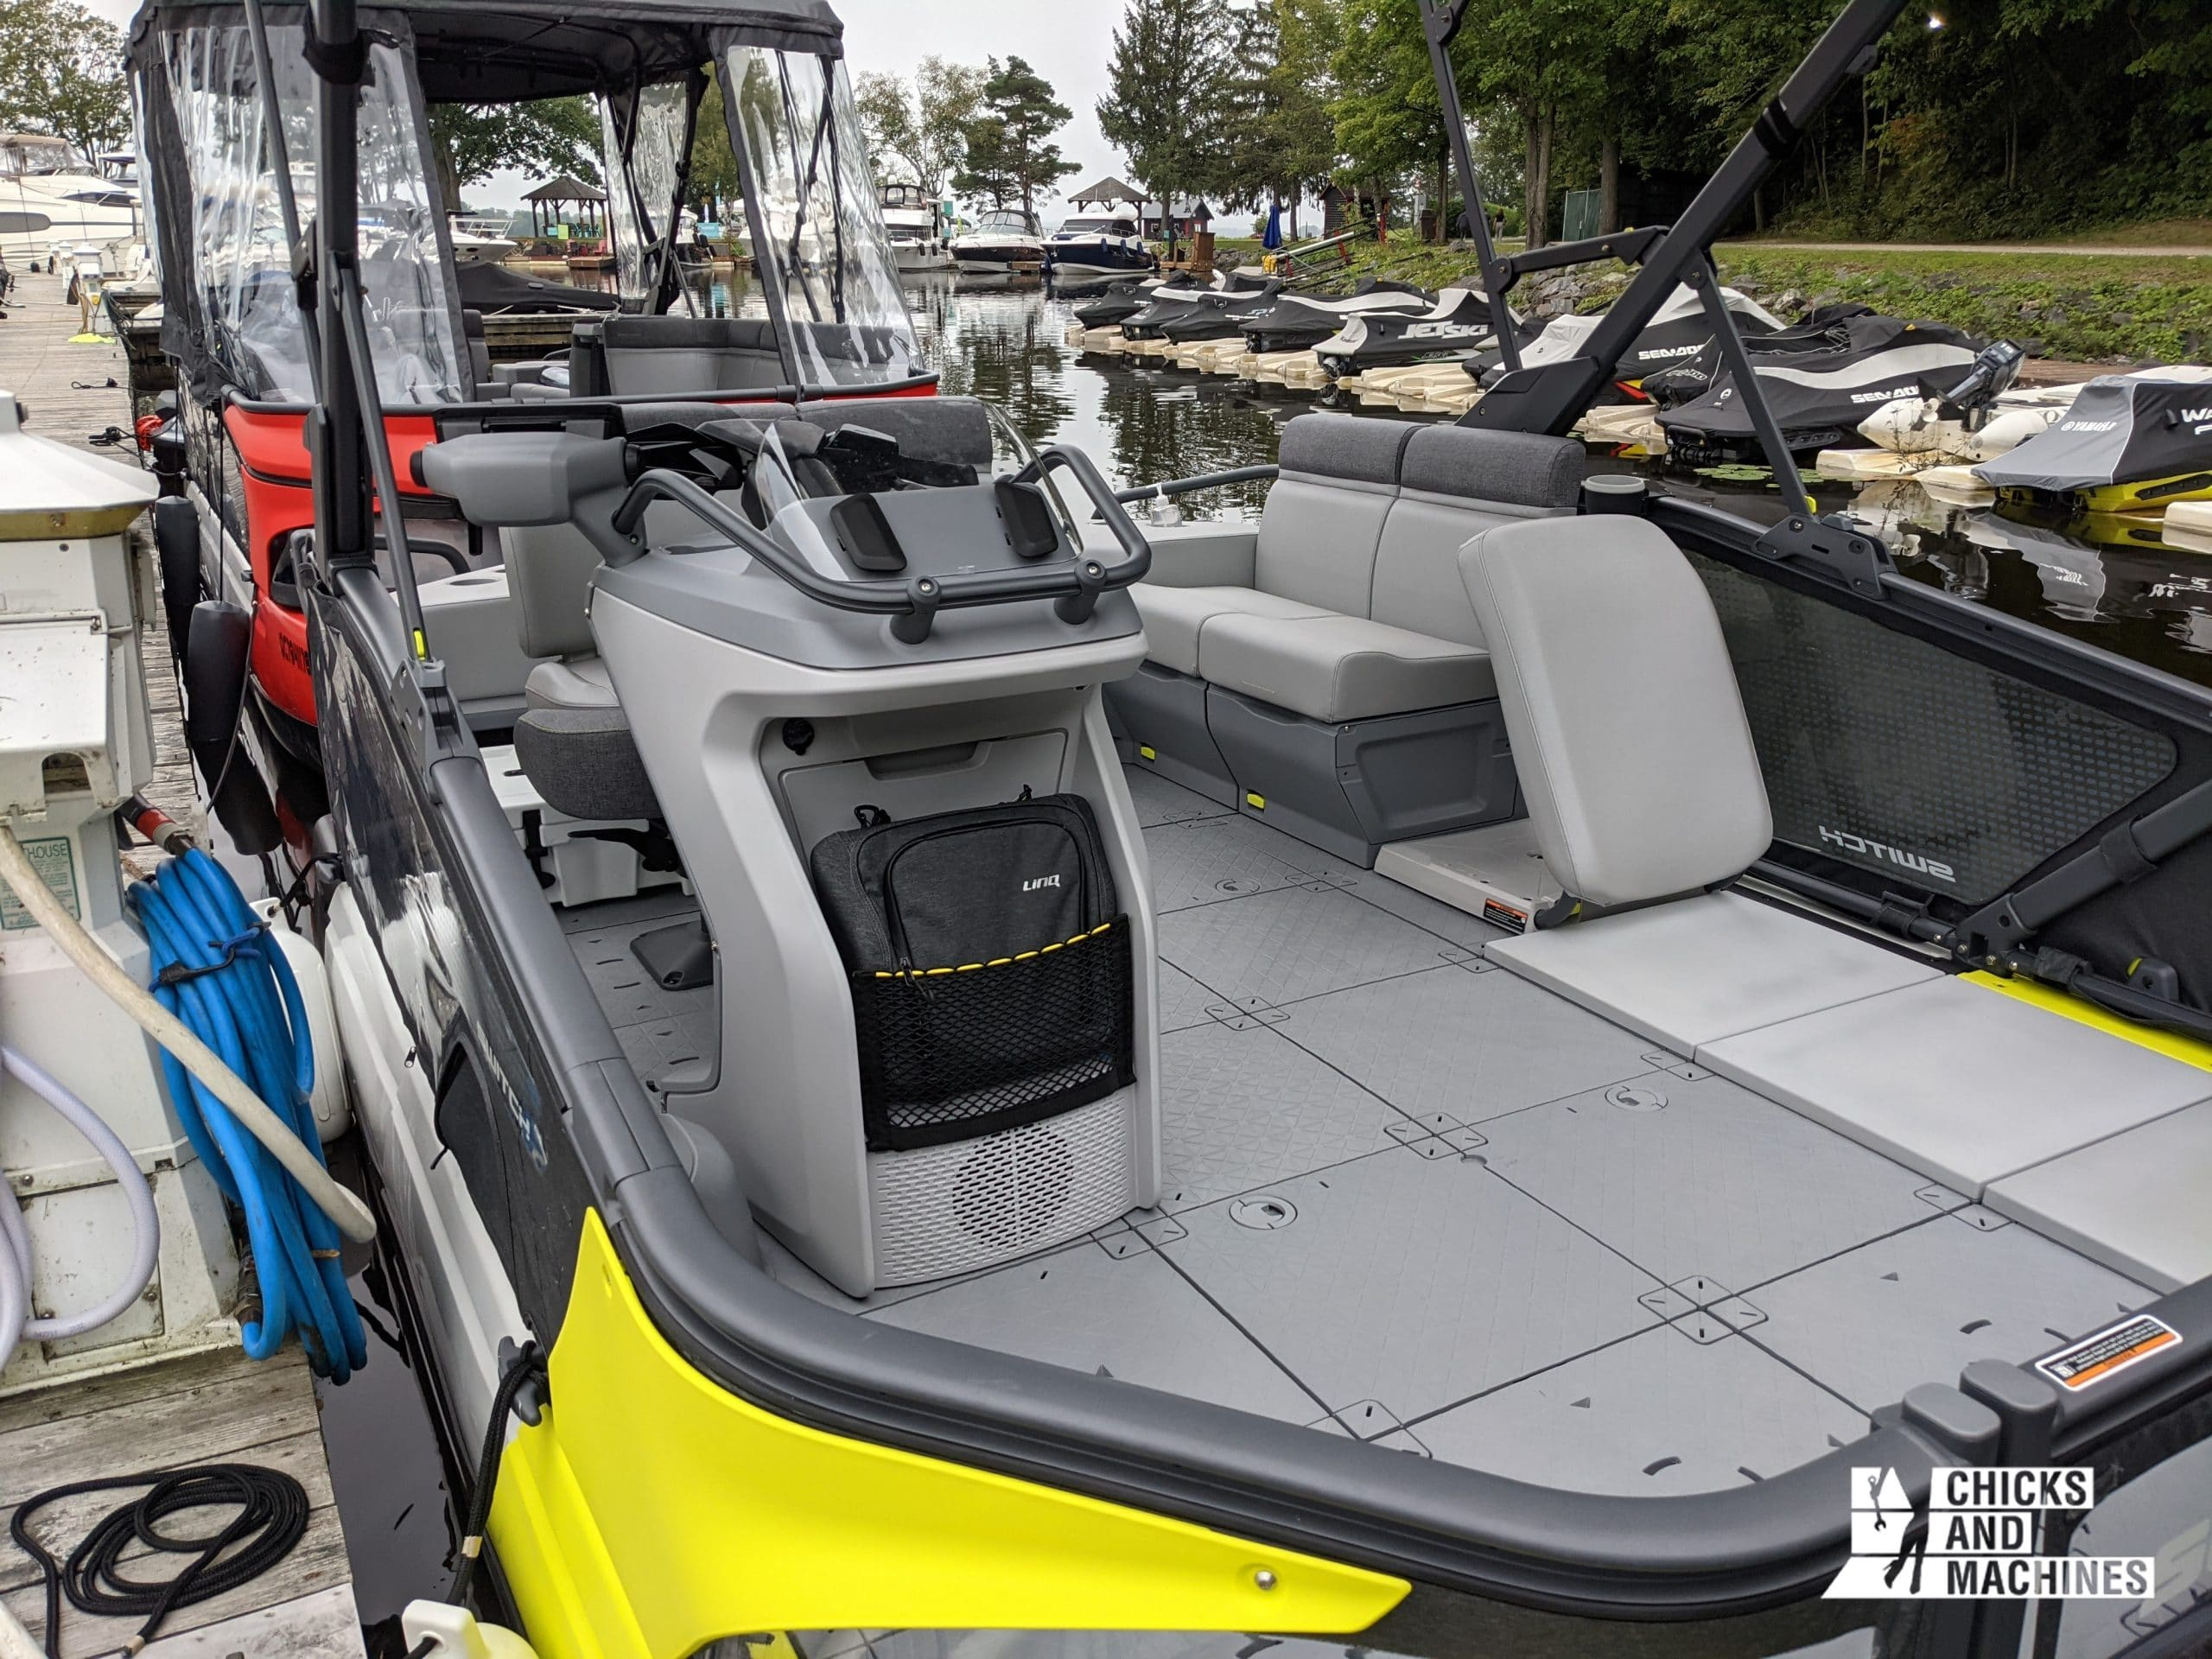 The modular platform of the Switch pontoon: easy to use!